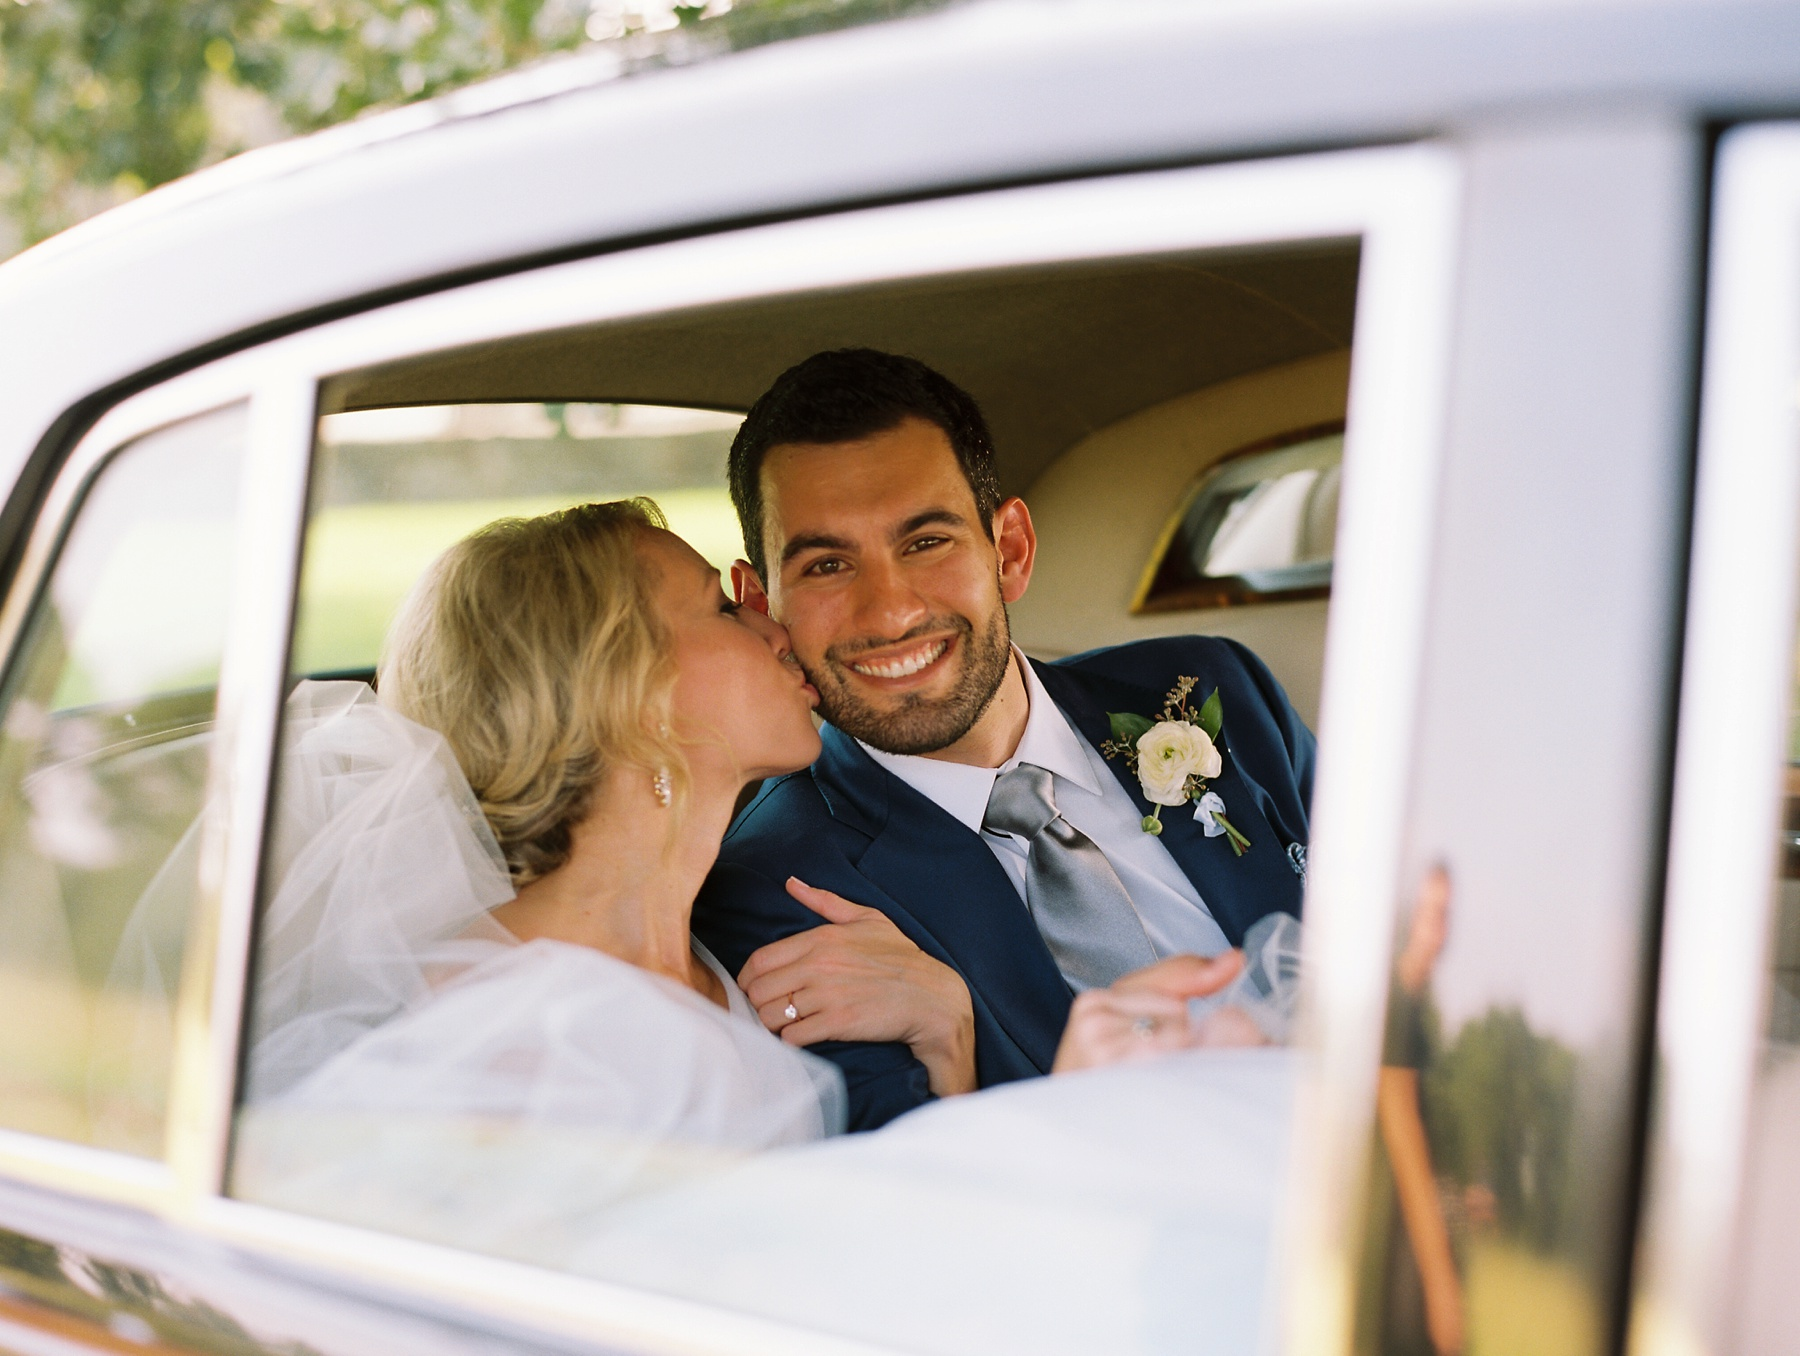 CMT Music City Jessica Mack and Andreas Plackis Wedding_1513.jpg